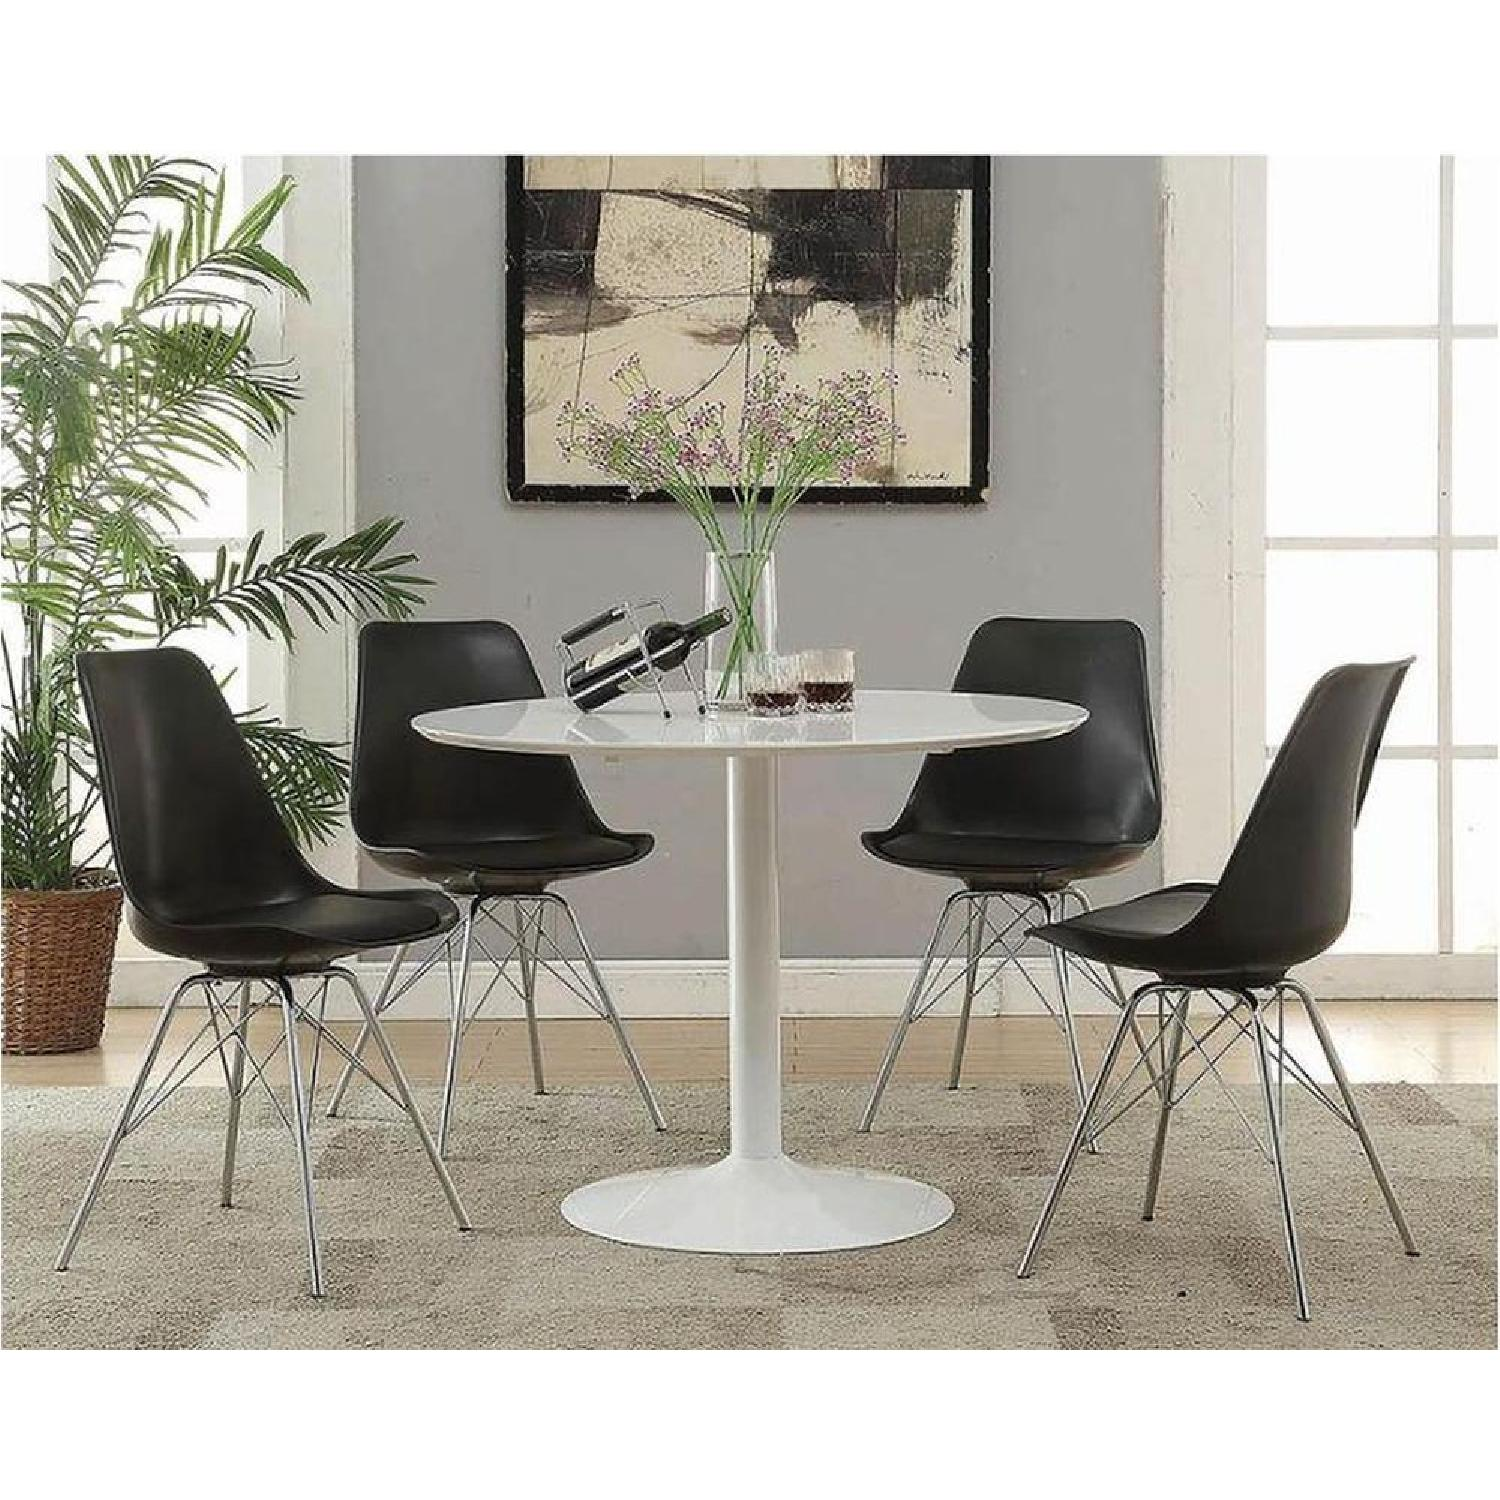 Mid Century Modern Style Dining Table in High Gloss Finish - image-2